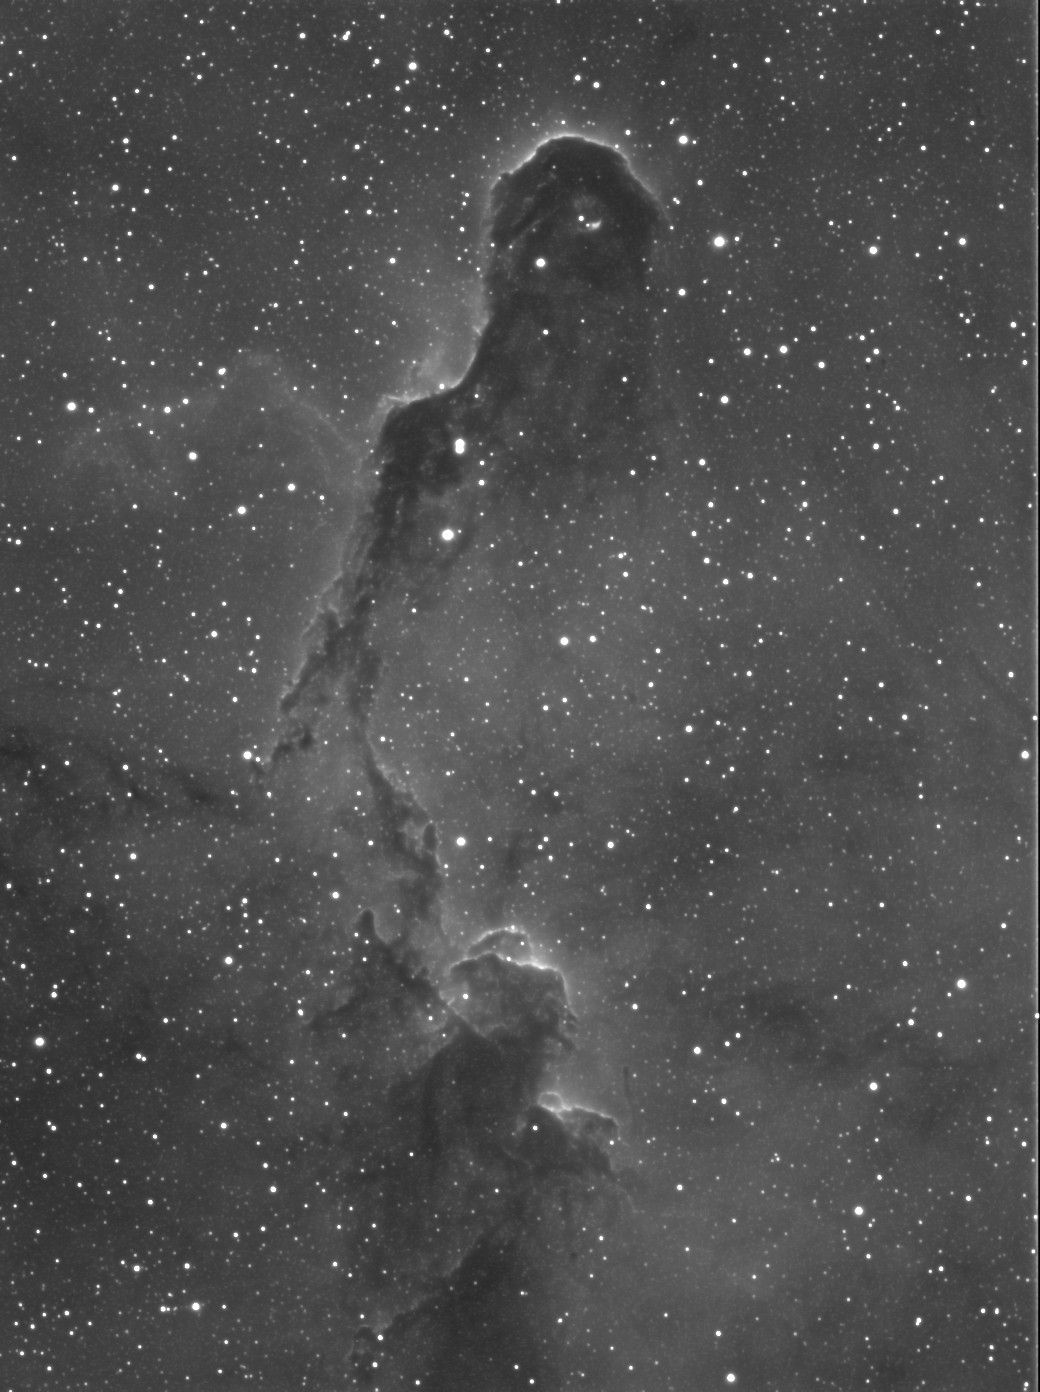 IC 1396 - Elephant's Trunk Nebula